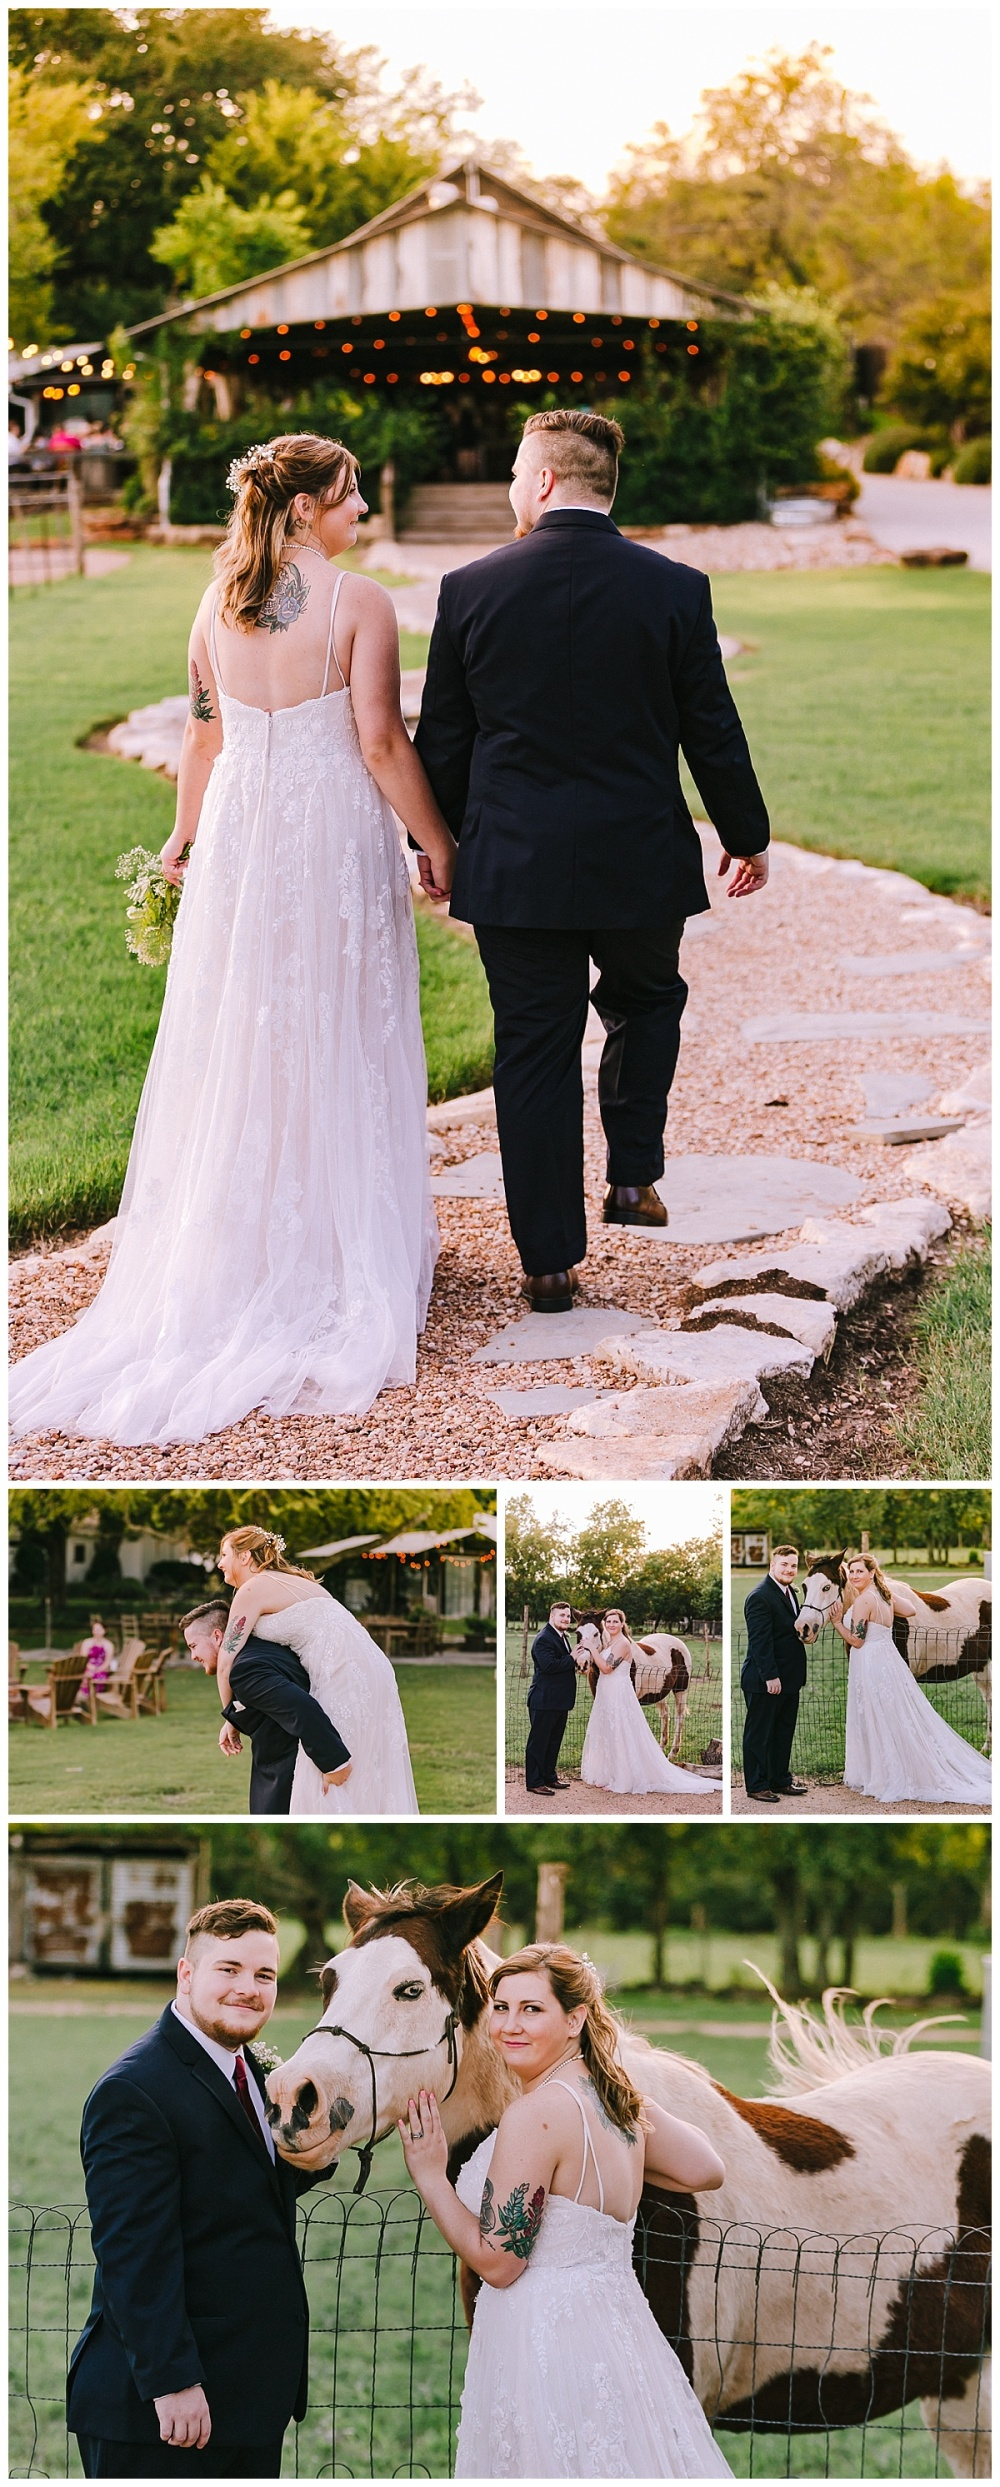 Texas-Wedding-Photographer-Gruene-Estate-Open-Air-Chapel-Carly-Barton-Photography-Katie-Nic_0055.jpg